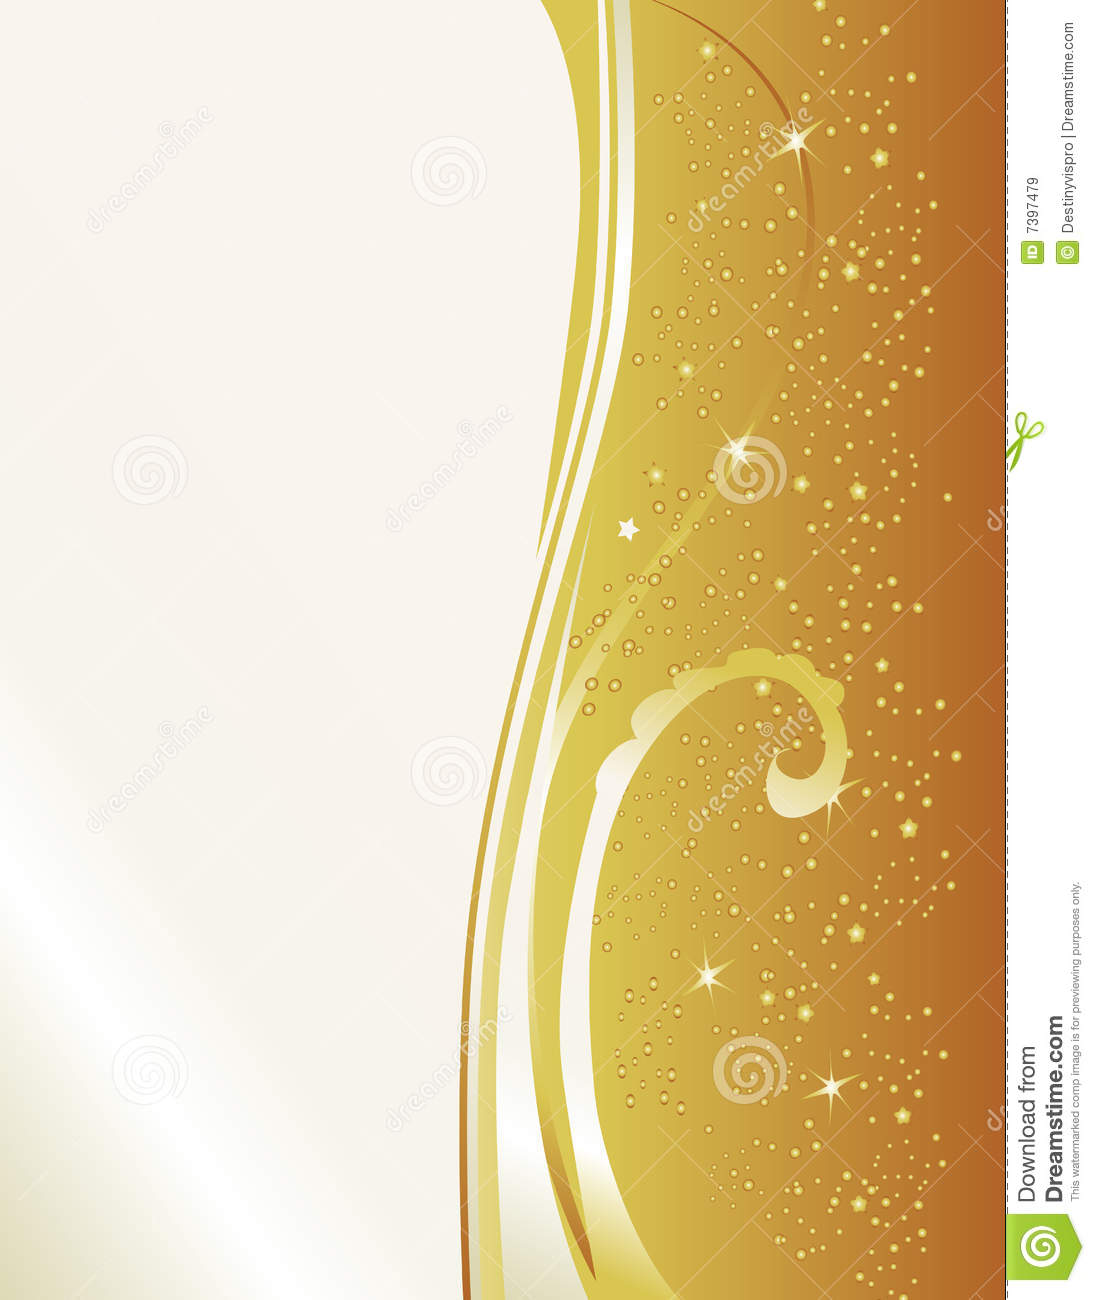 formal gold invitation stock illustration  image of swirl